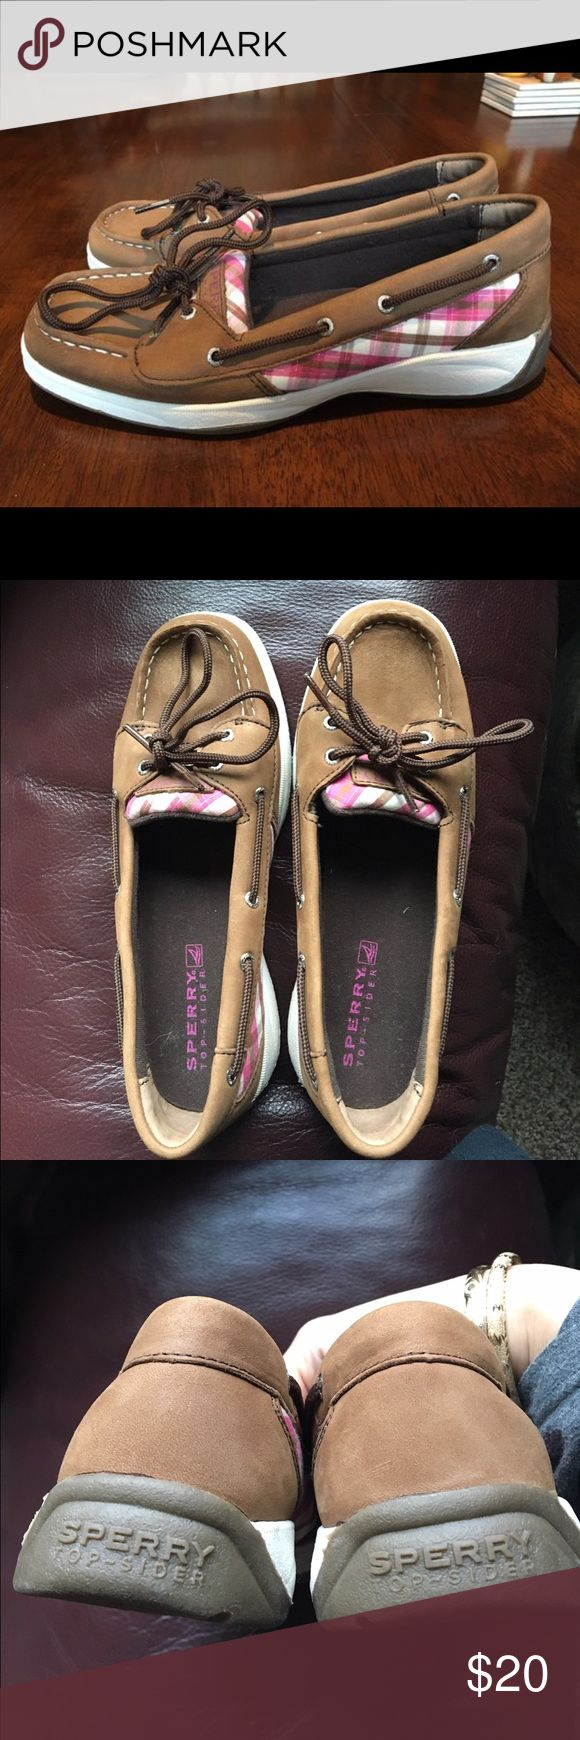 Girl's Sperry Top-Sider boat shoes NWOT size 4M Girl's Sperry Top-Sider boat shoes NWOT size 4M in pink plaid. Sperry Top-Sider Shoes Moccasins